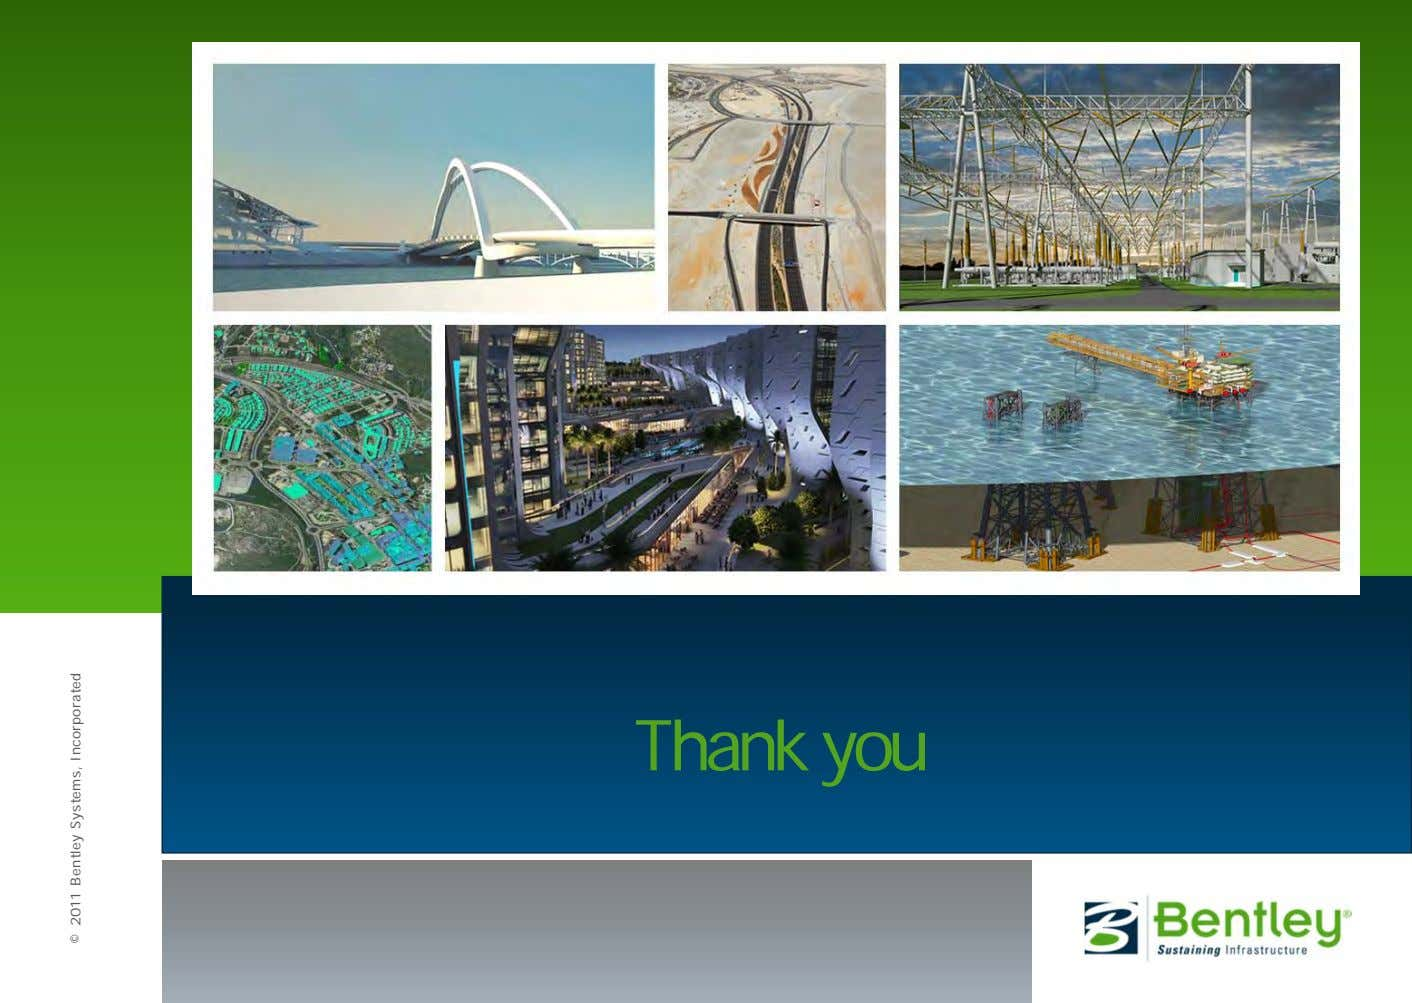 Thank you © 2011 Bentley Systems, Incorporated